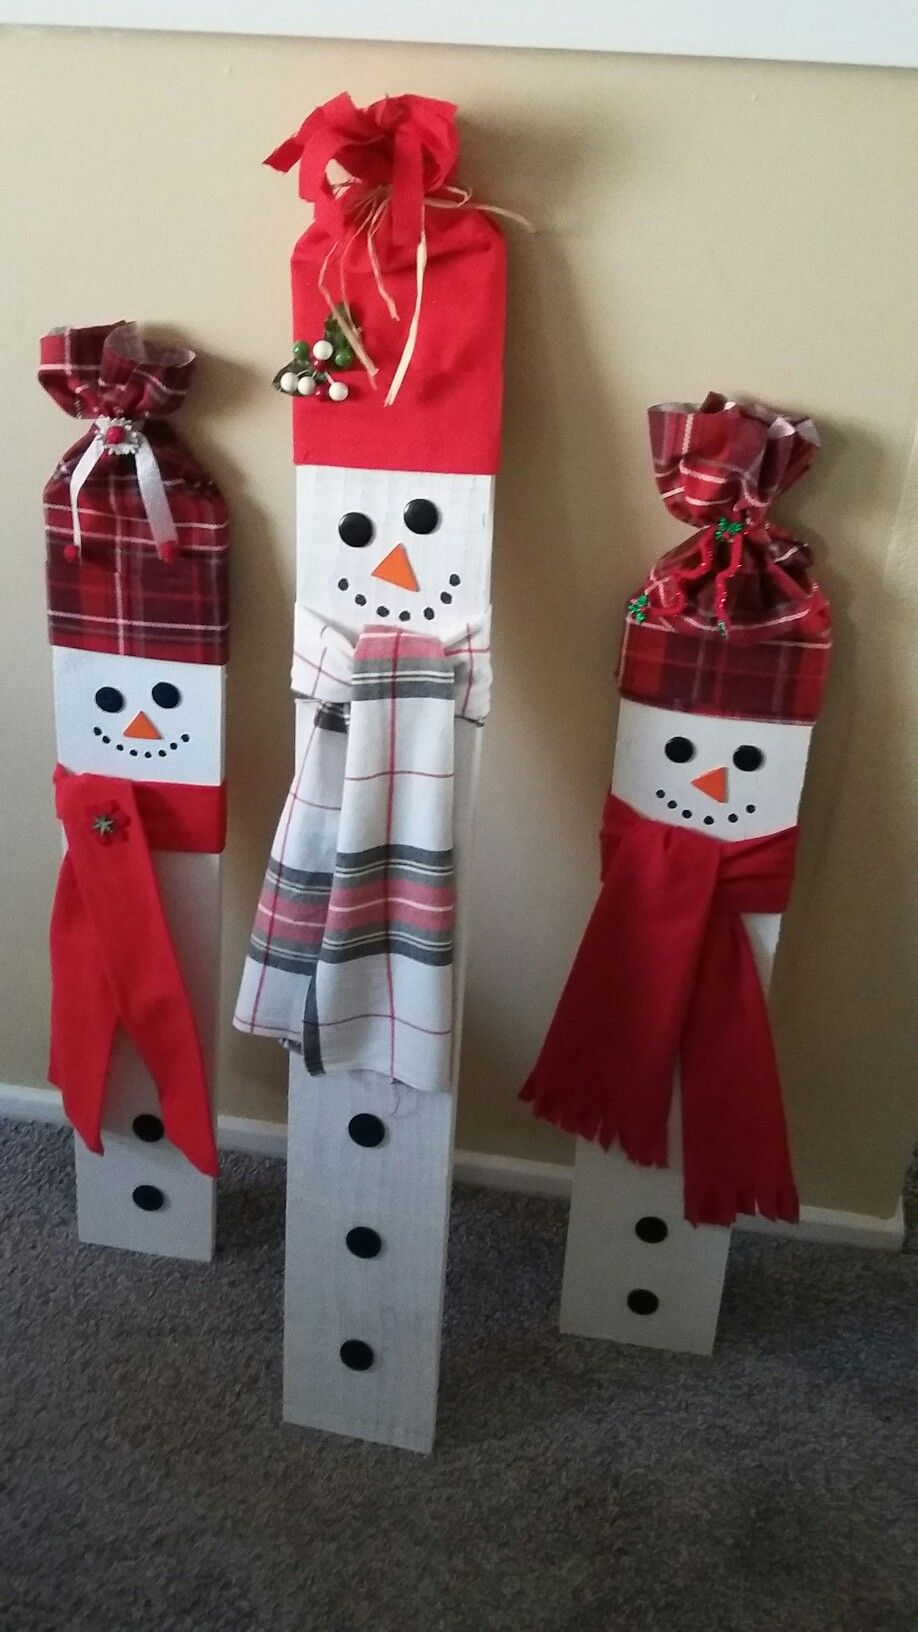 Pin by susan varbel on My Creations   Christmas wood ...